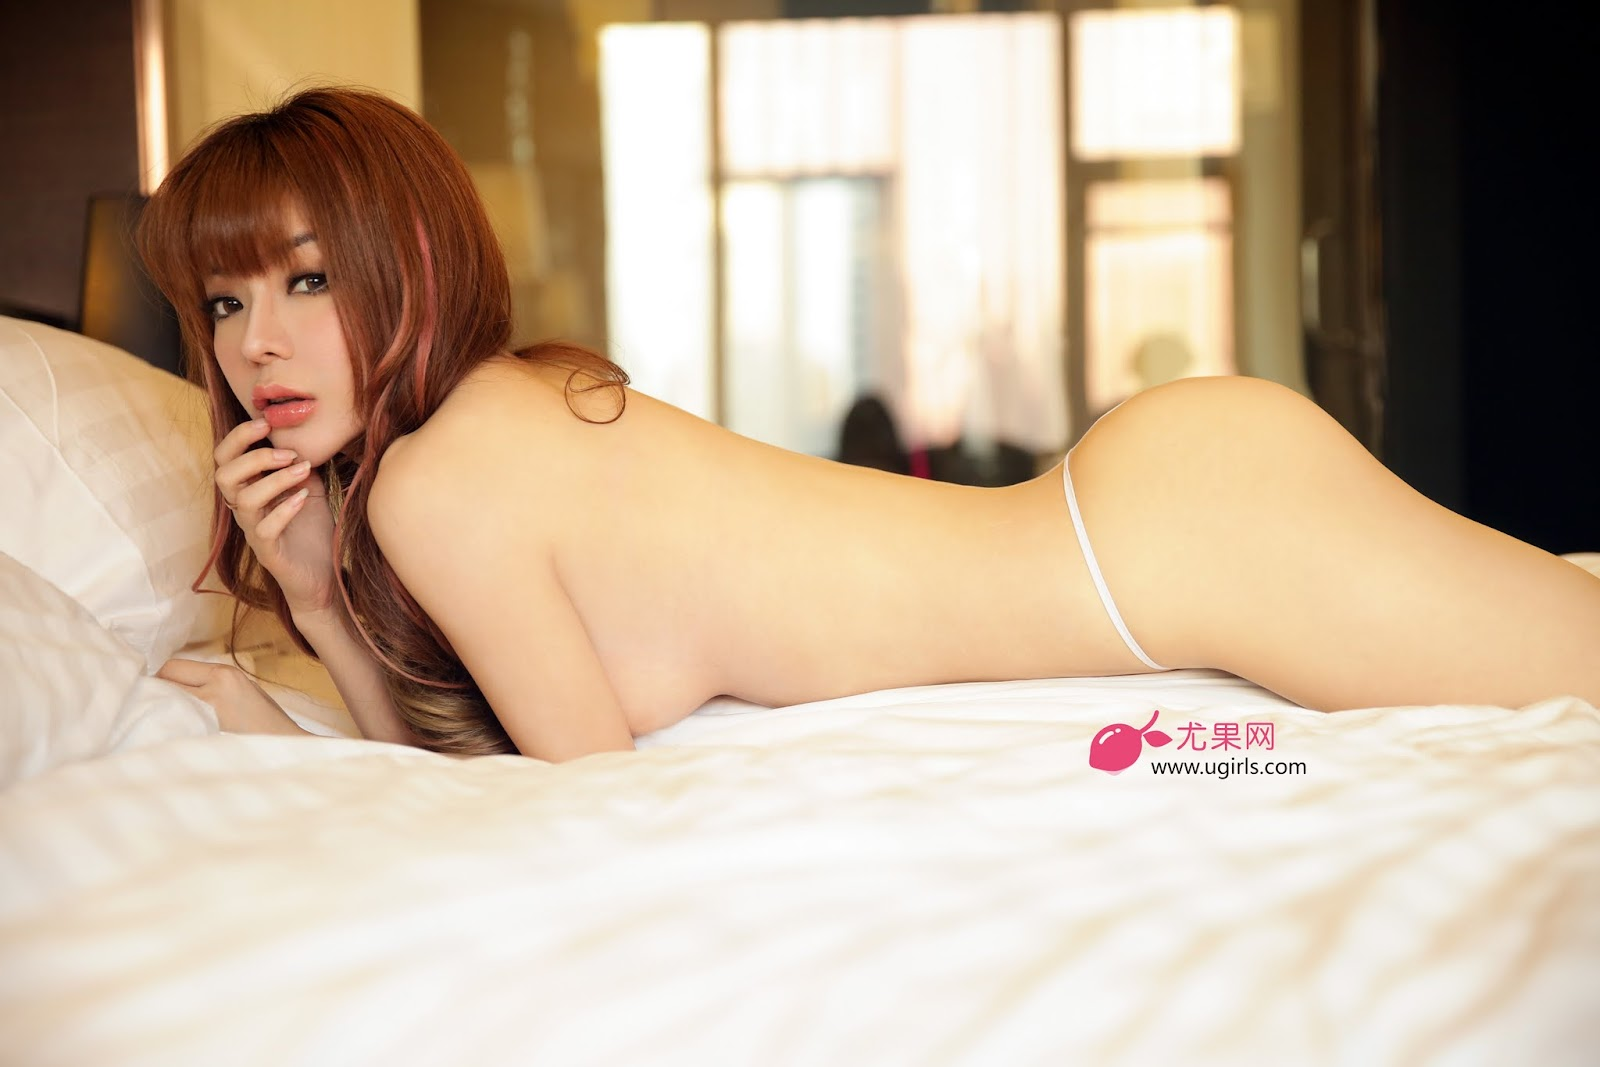 A14A1392 - Hot Nude UGIRLS NO.1 Gallery